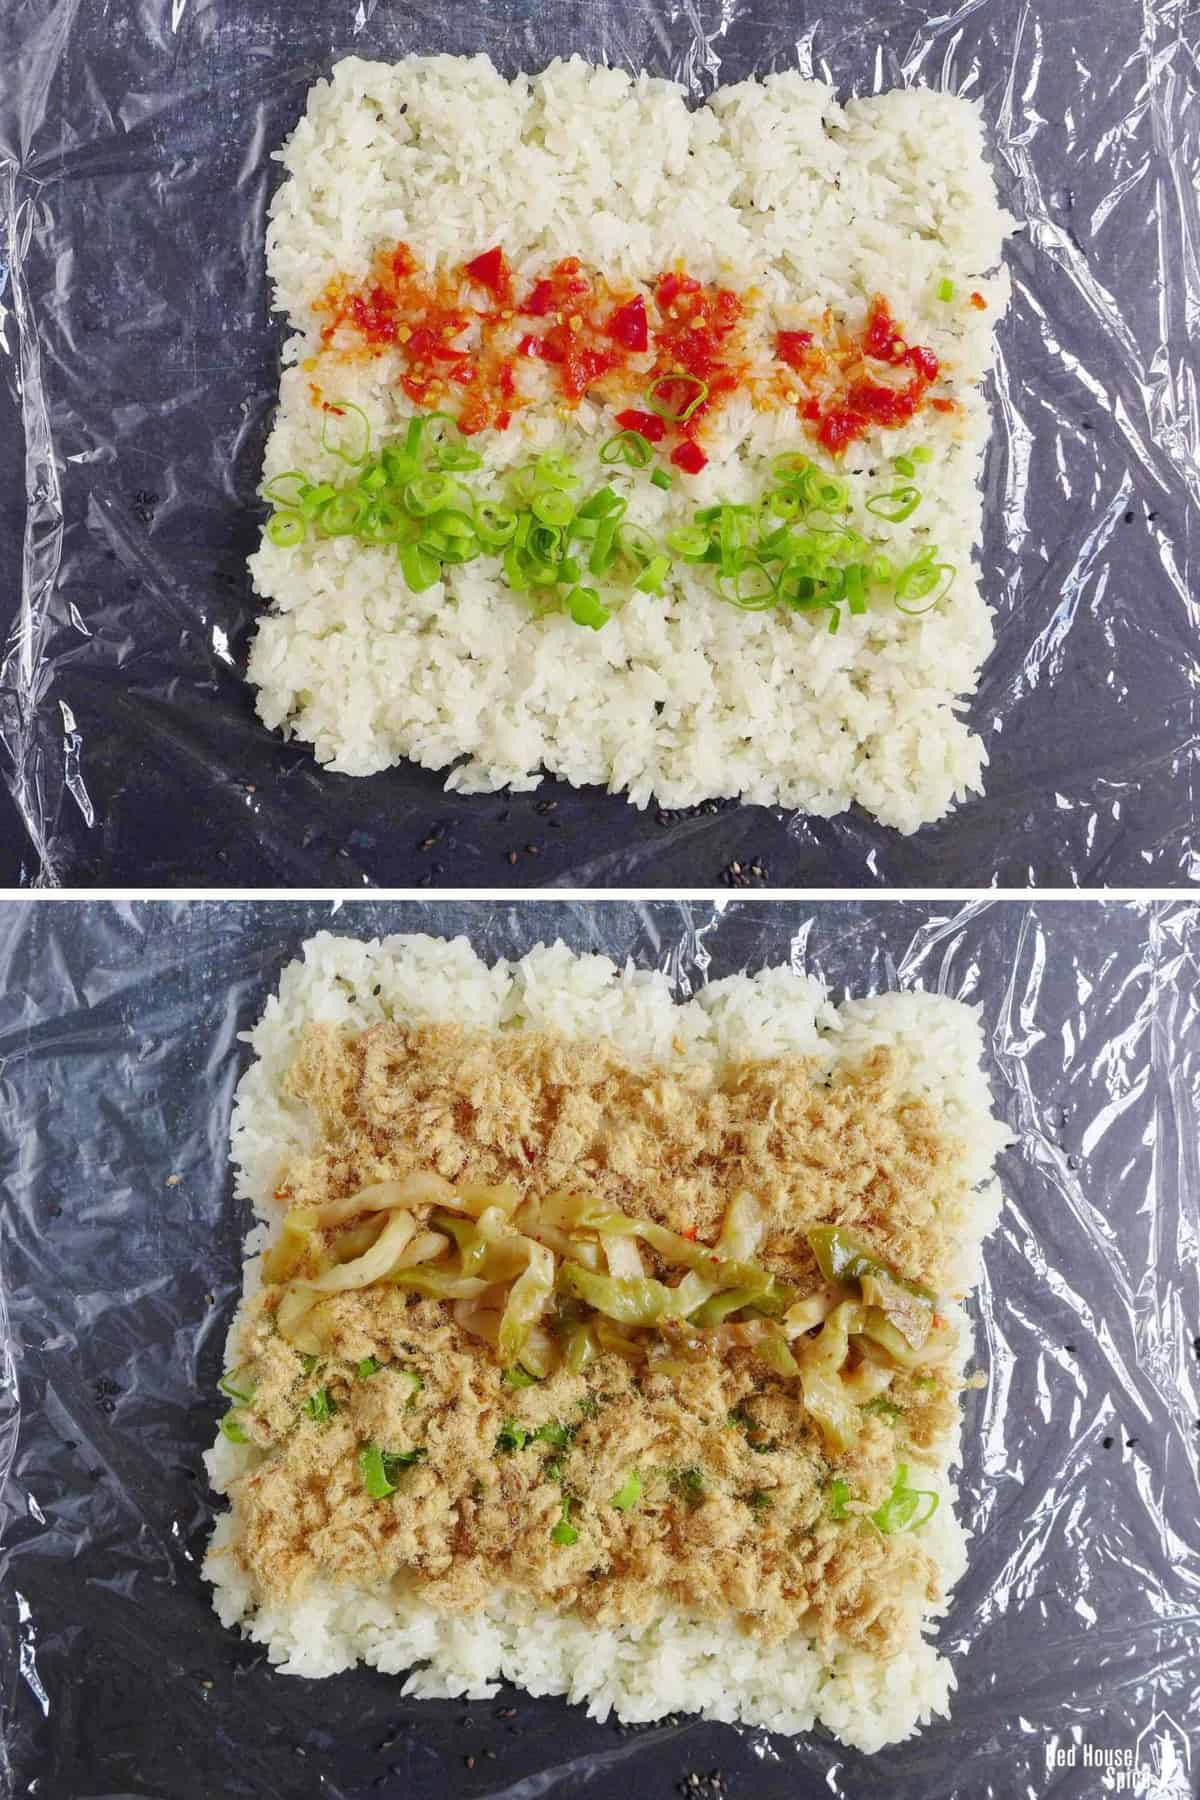 A collage of two images. One shows chili sauce and scallion over rice. The other shows pork floss and preserved vegetable over rice.